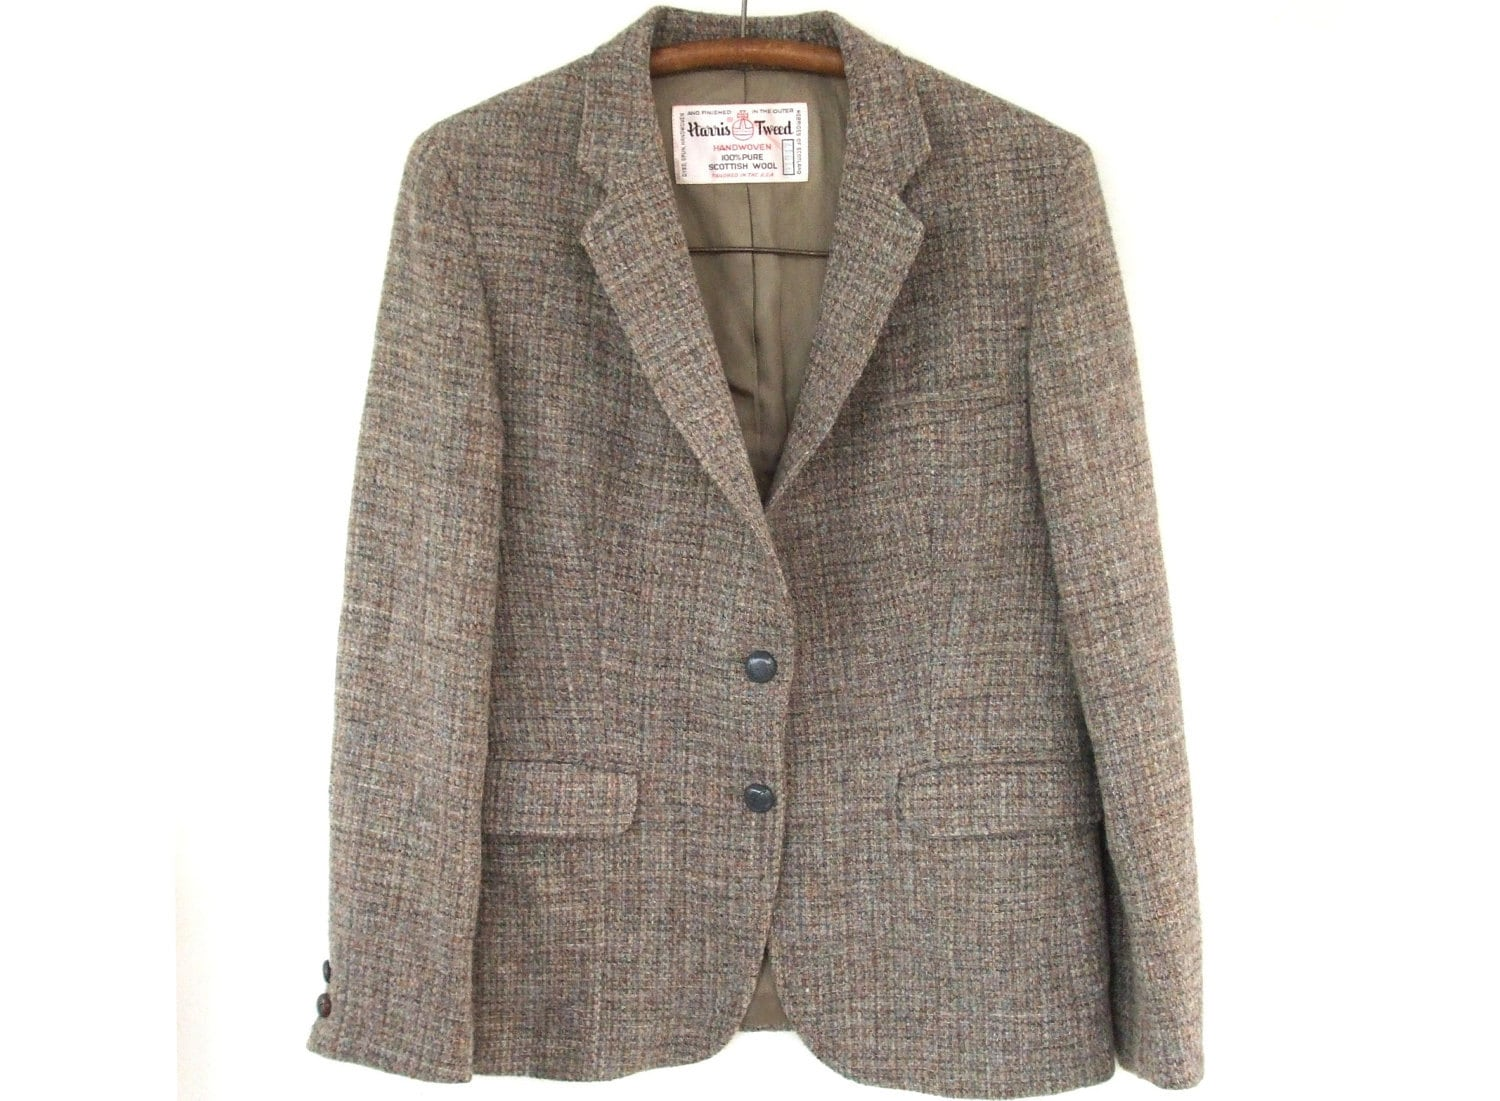 Handwoven Irish Tweed Clothing. Spinning and weaving are an integral part of Irish culture. From to the mids, the tweed clothing industry was the main source of .